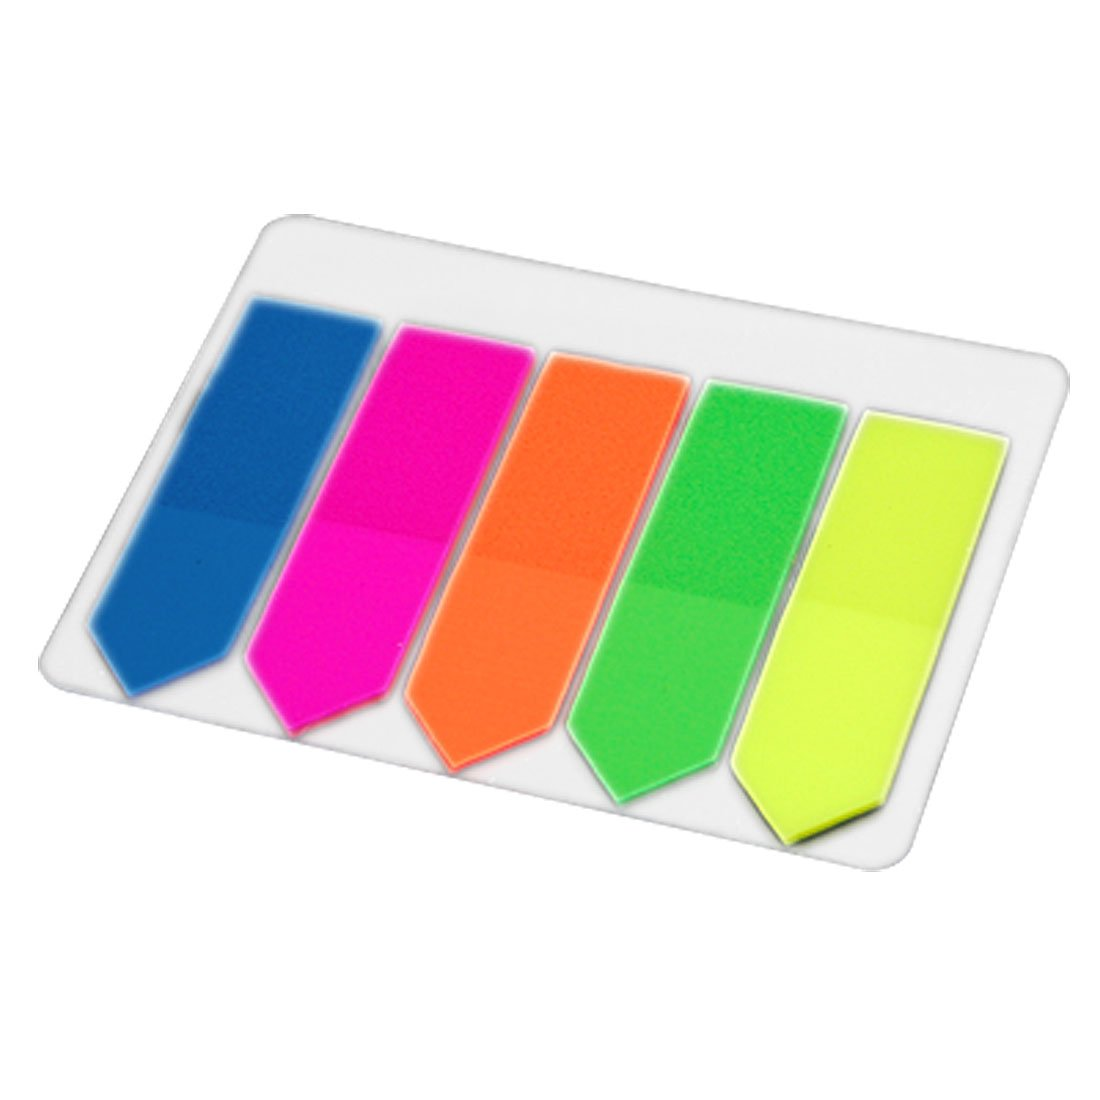 BLEL Hot Sticky Highlight Page Markers Arrow Flags, 2 Pack, 5 Colors (a10010500ux0523)